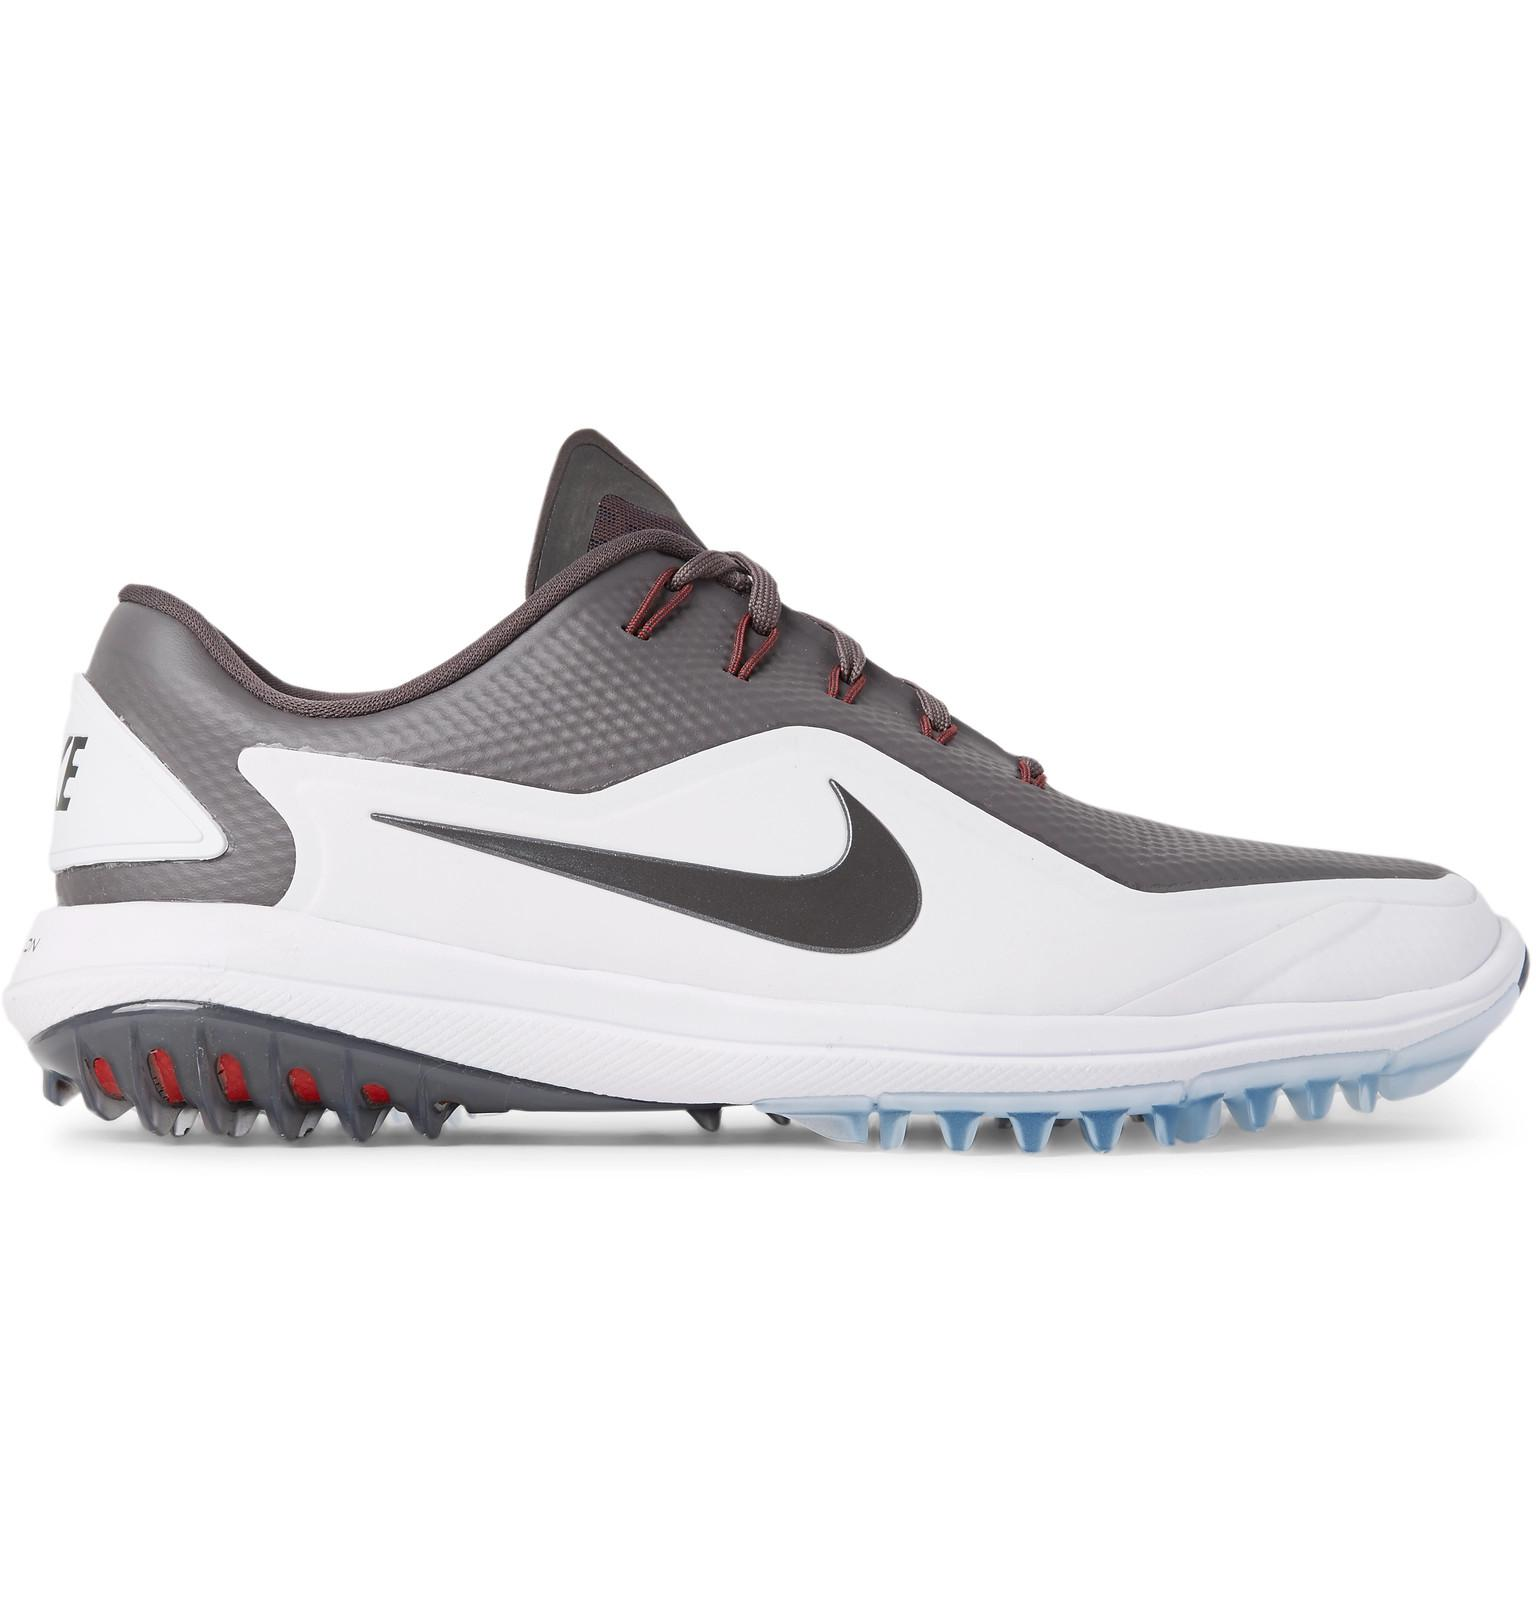 new styles 7f70f e62b6 Lyst - Nike Lunar Control Vapor 2 Coated-mesh Golf Shoes in Gray for Men